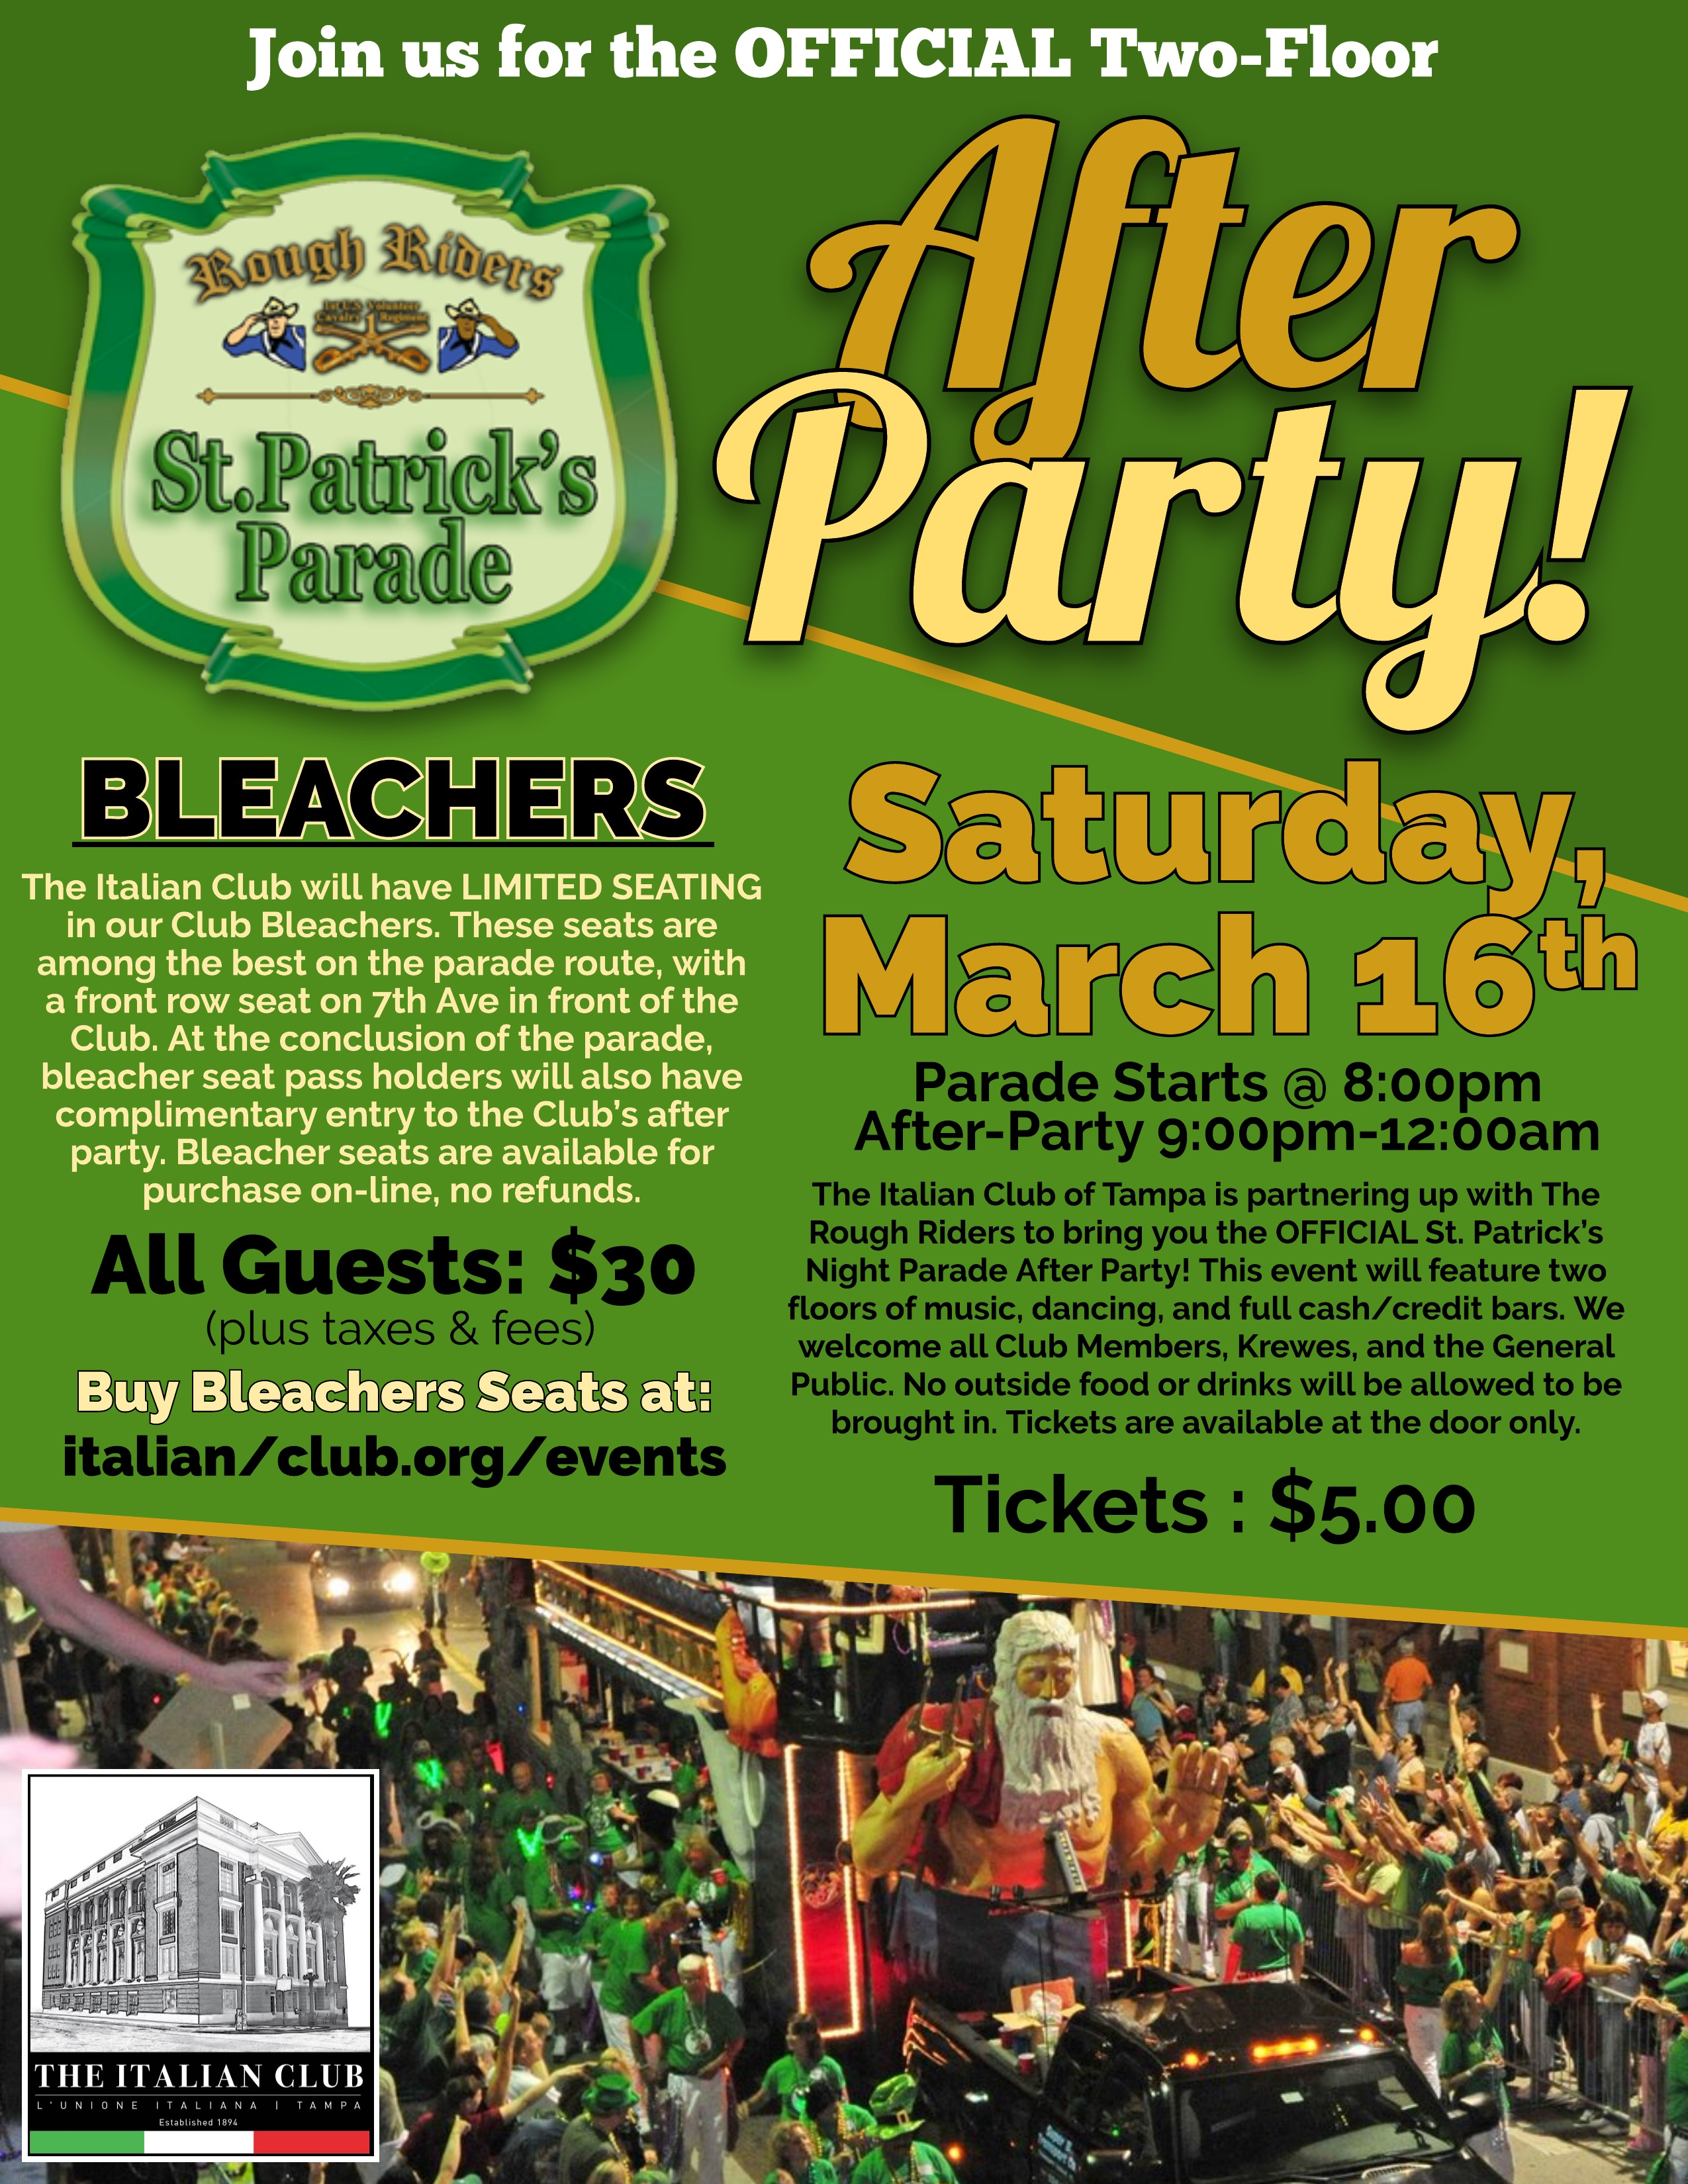 Rough Riders St. Patrick's Parade Bleachers & After Party